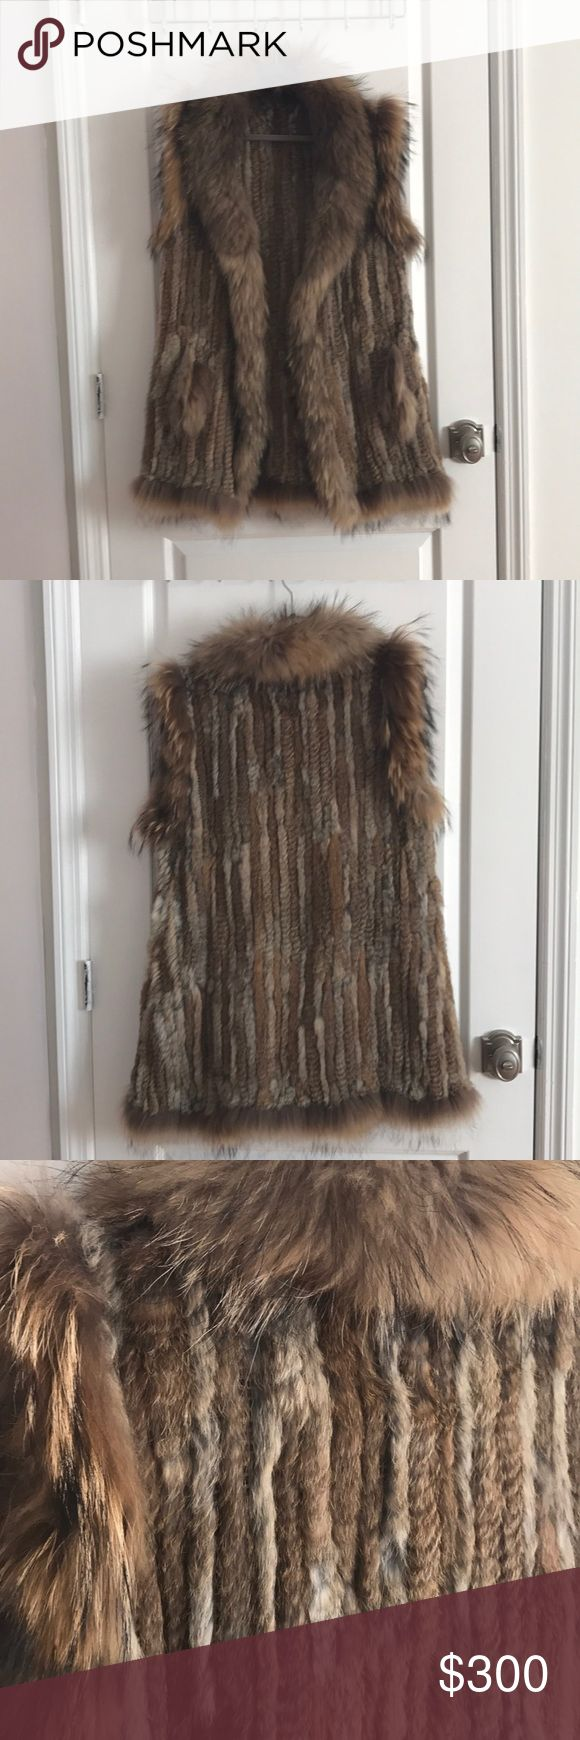 Real Fur Vest - Size L/XL This fur vest is made up of piece of real fur from Rabbit and Marmot. The vest is extremely soft to the touch and looks amazing when paired with jeans and a long sleeve! This fur vest is used but had no signs of damage or wear! Jackets & Coats Vests